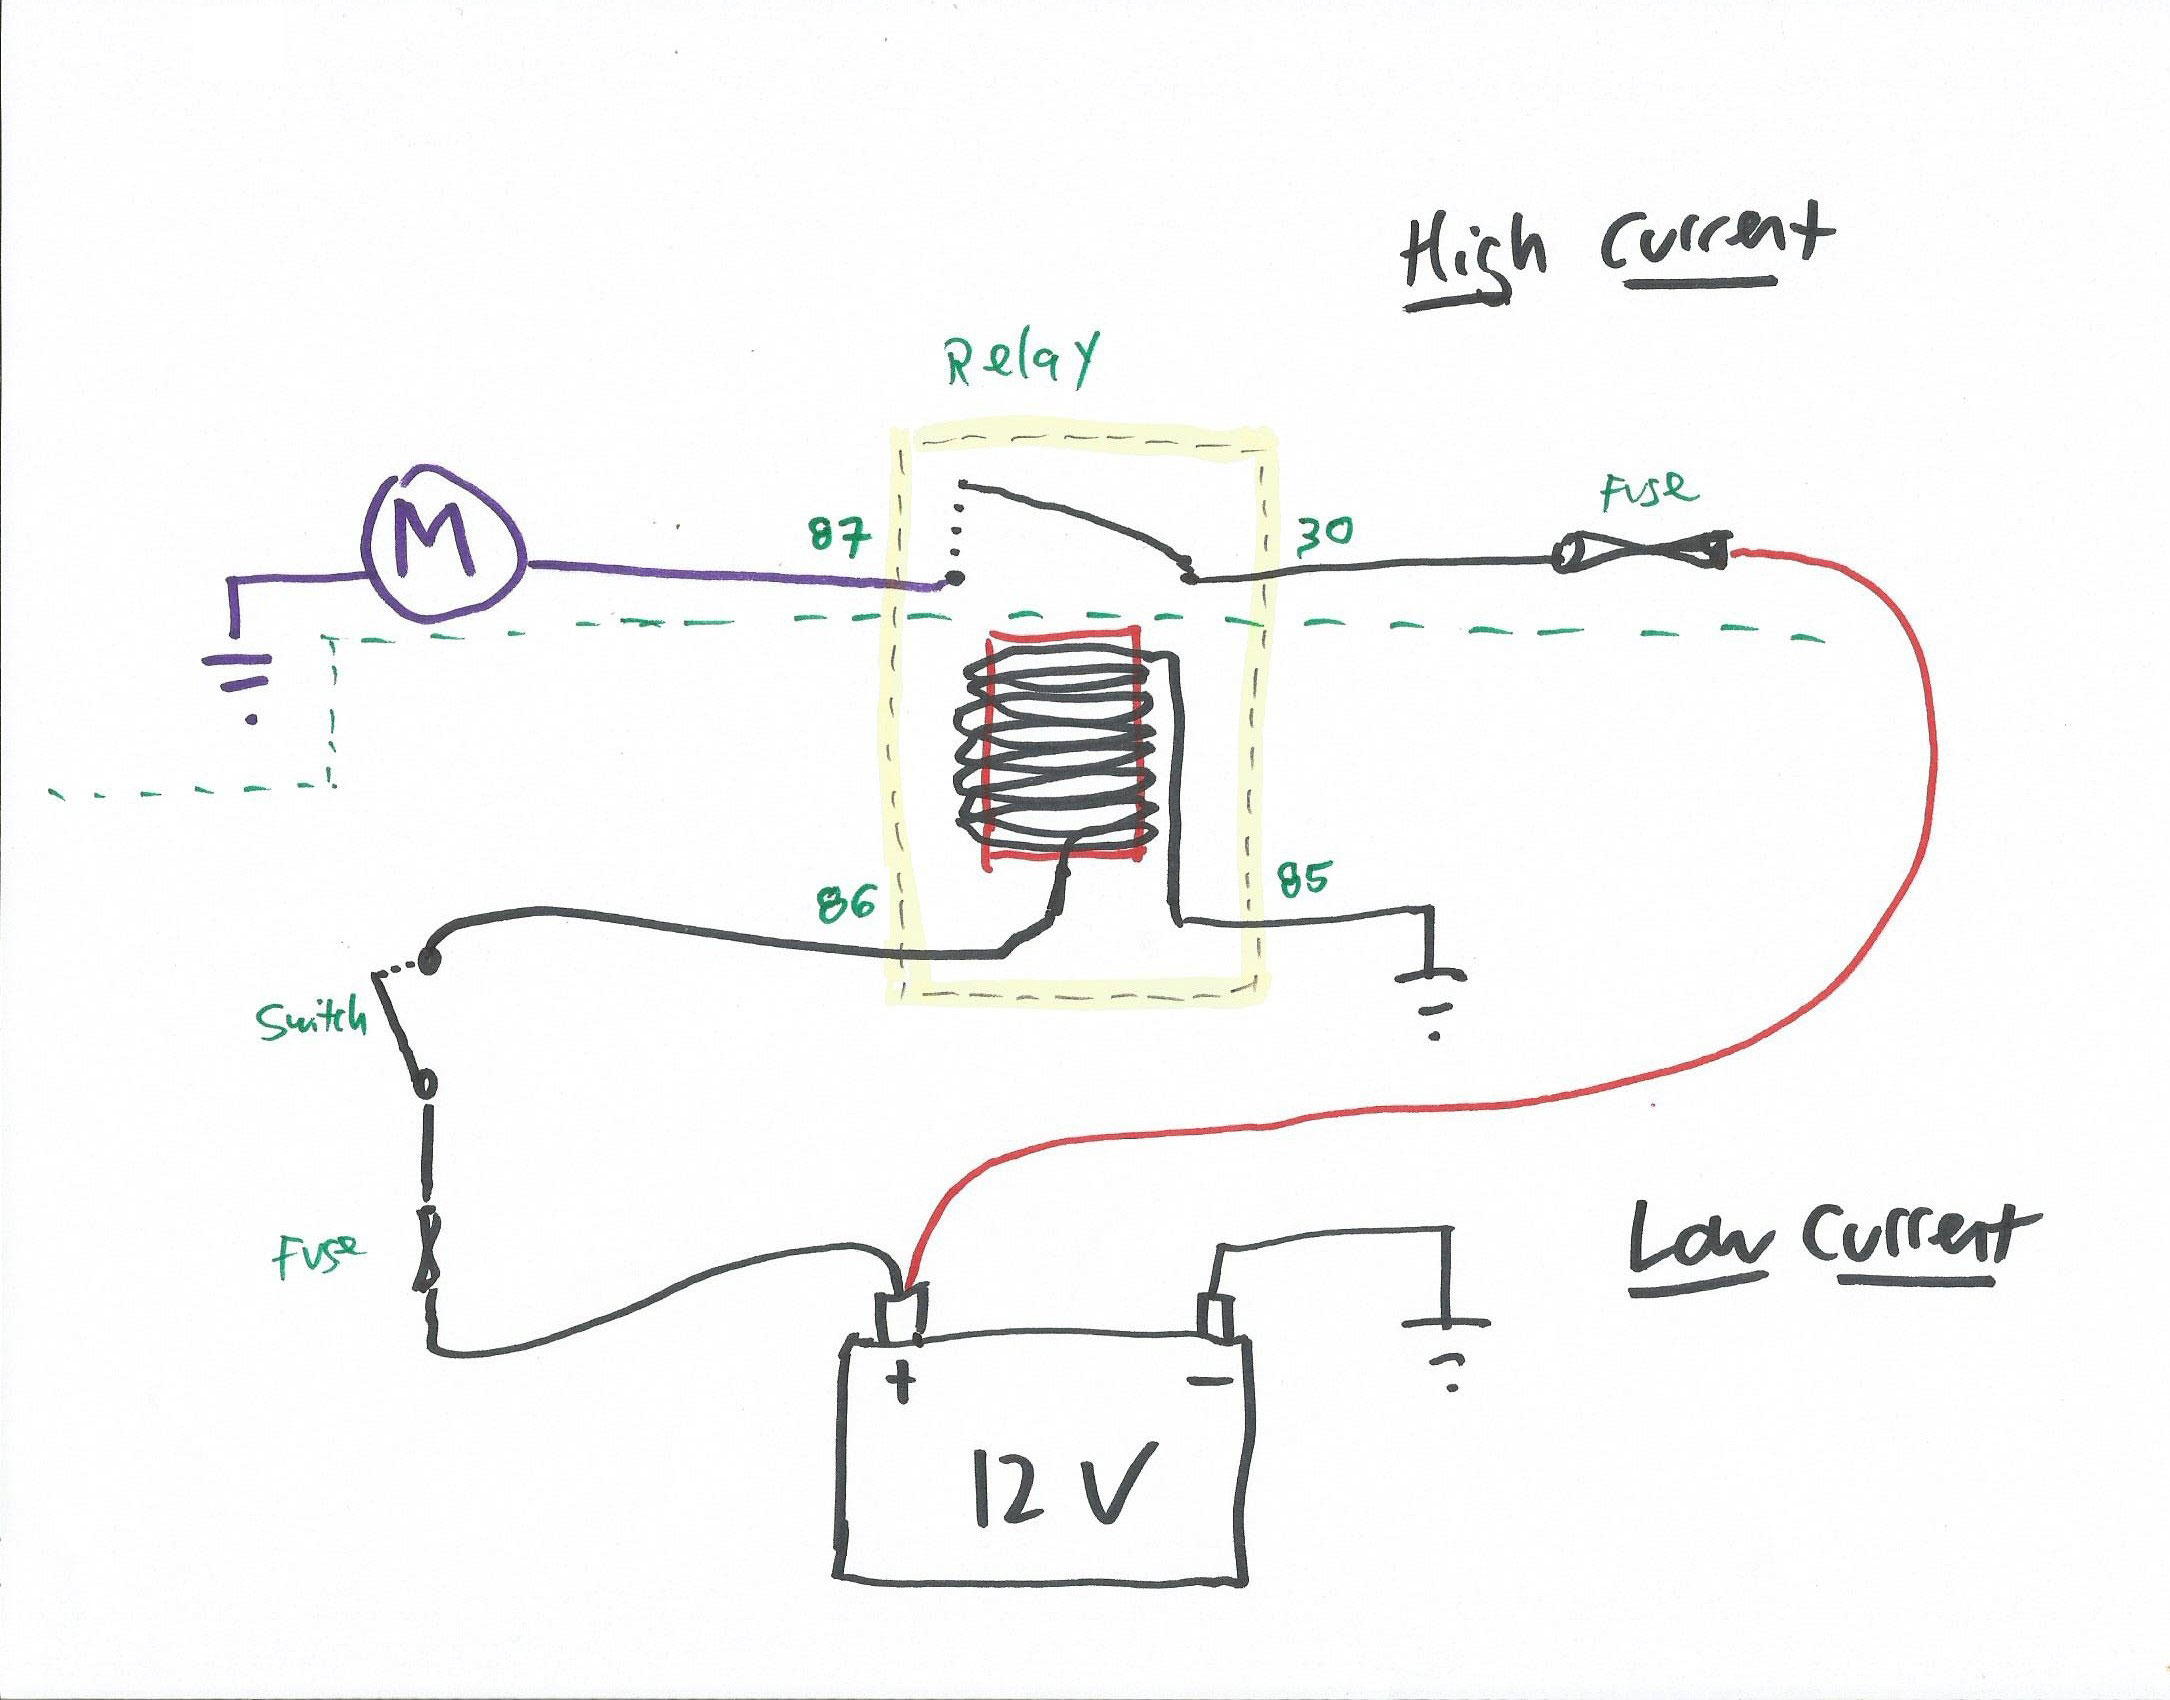 basic relay wiring diagram understanding relays  part 3 troubleshooting hagerty media  understanding relays  part 3